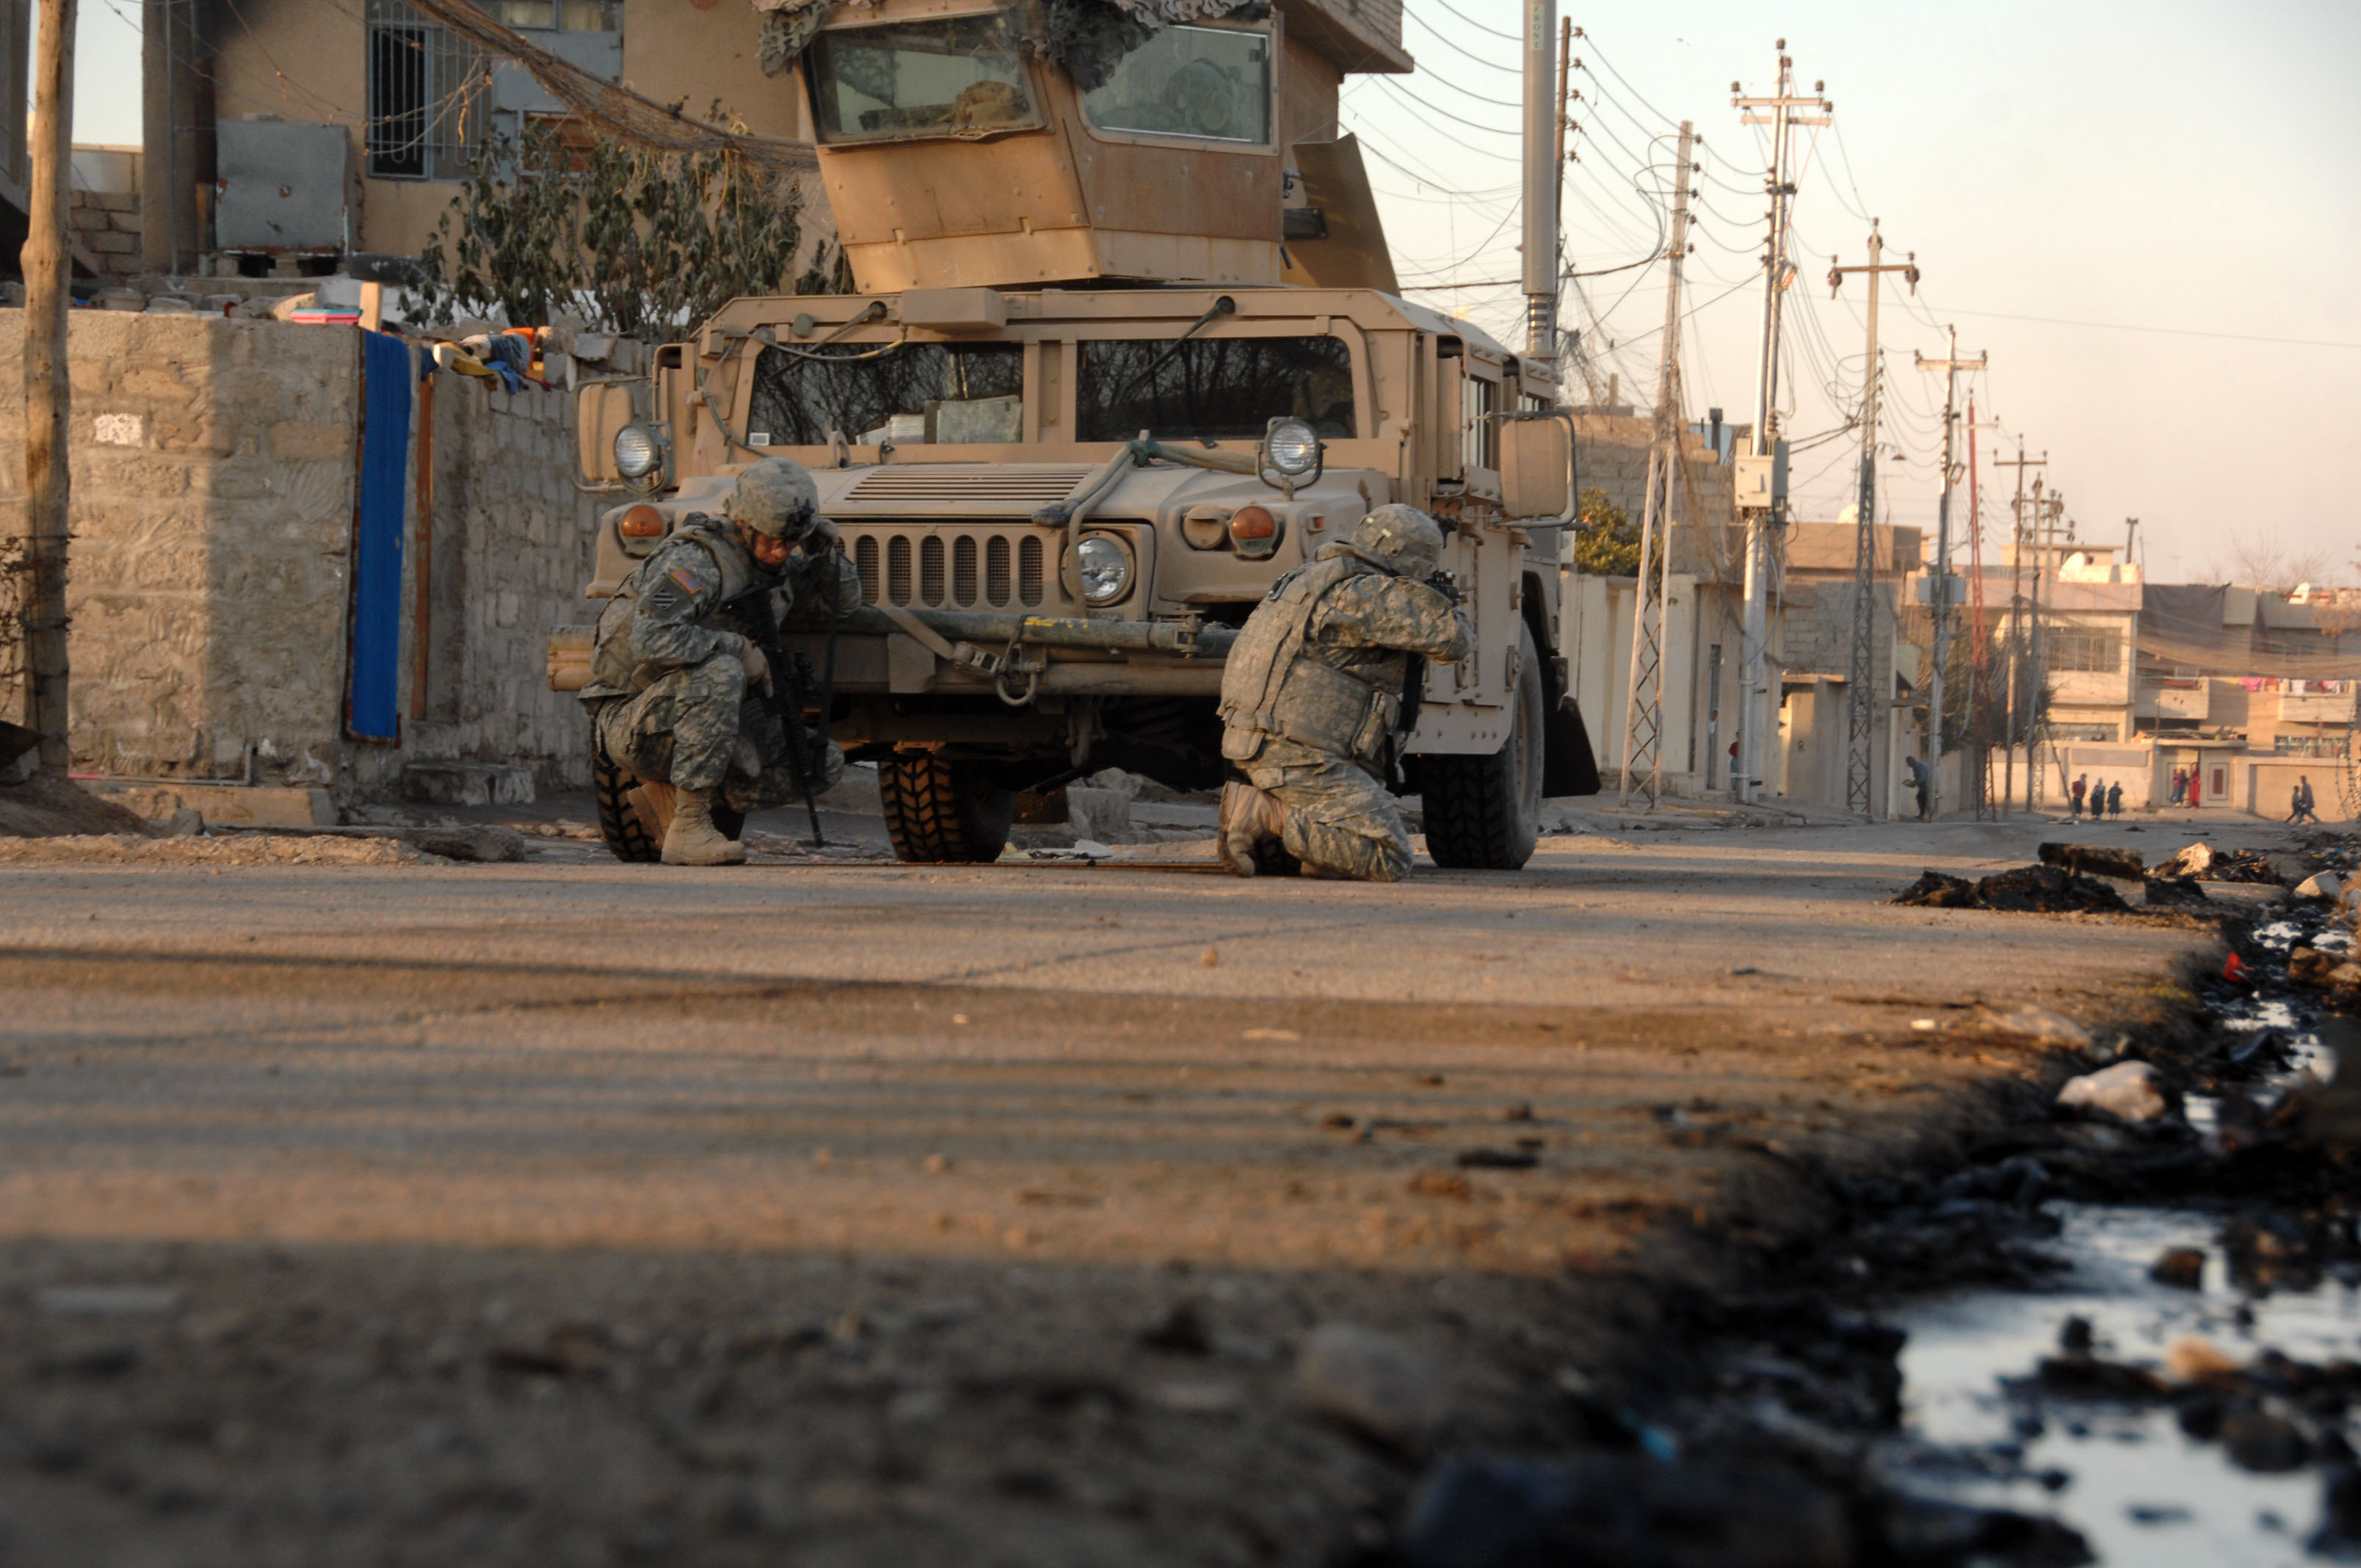 U.S. Army Soldiers, attached to Heavy Company, 3rd Squadron, 3rd Armored Cavalry Regiment, take cover behind their vehicle as they hear small arms fire open up in the distance in Mosul, Iraq, on Jan. 17, 2008. (U.S. Army photo by Spc. Kieran Cuddihy) (Released)